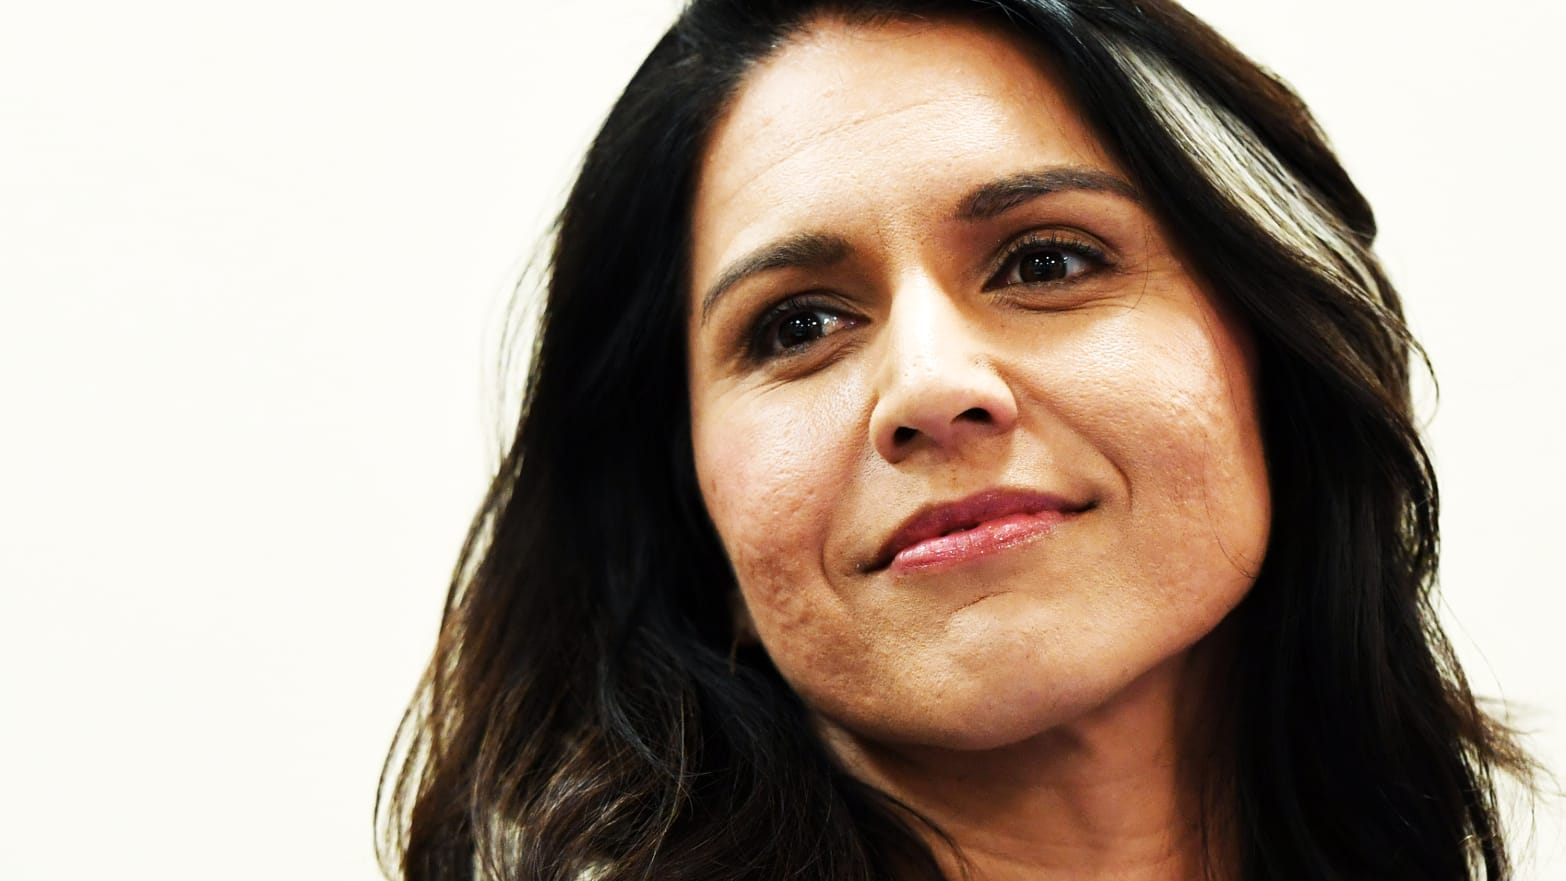 Tulsi Gabbard's Campaign Is Being Boosted by Russophiles